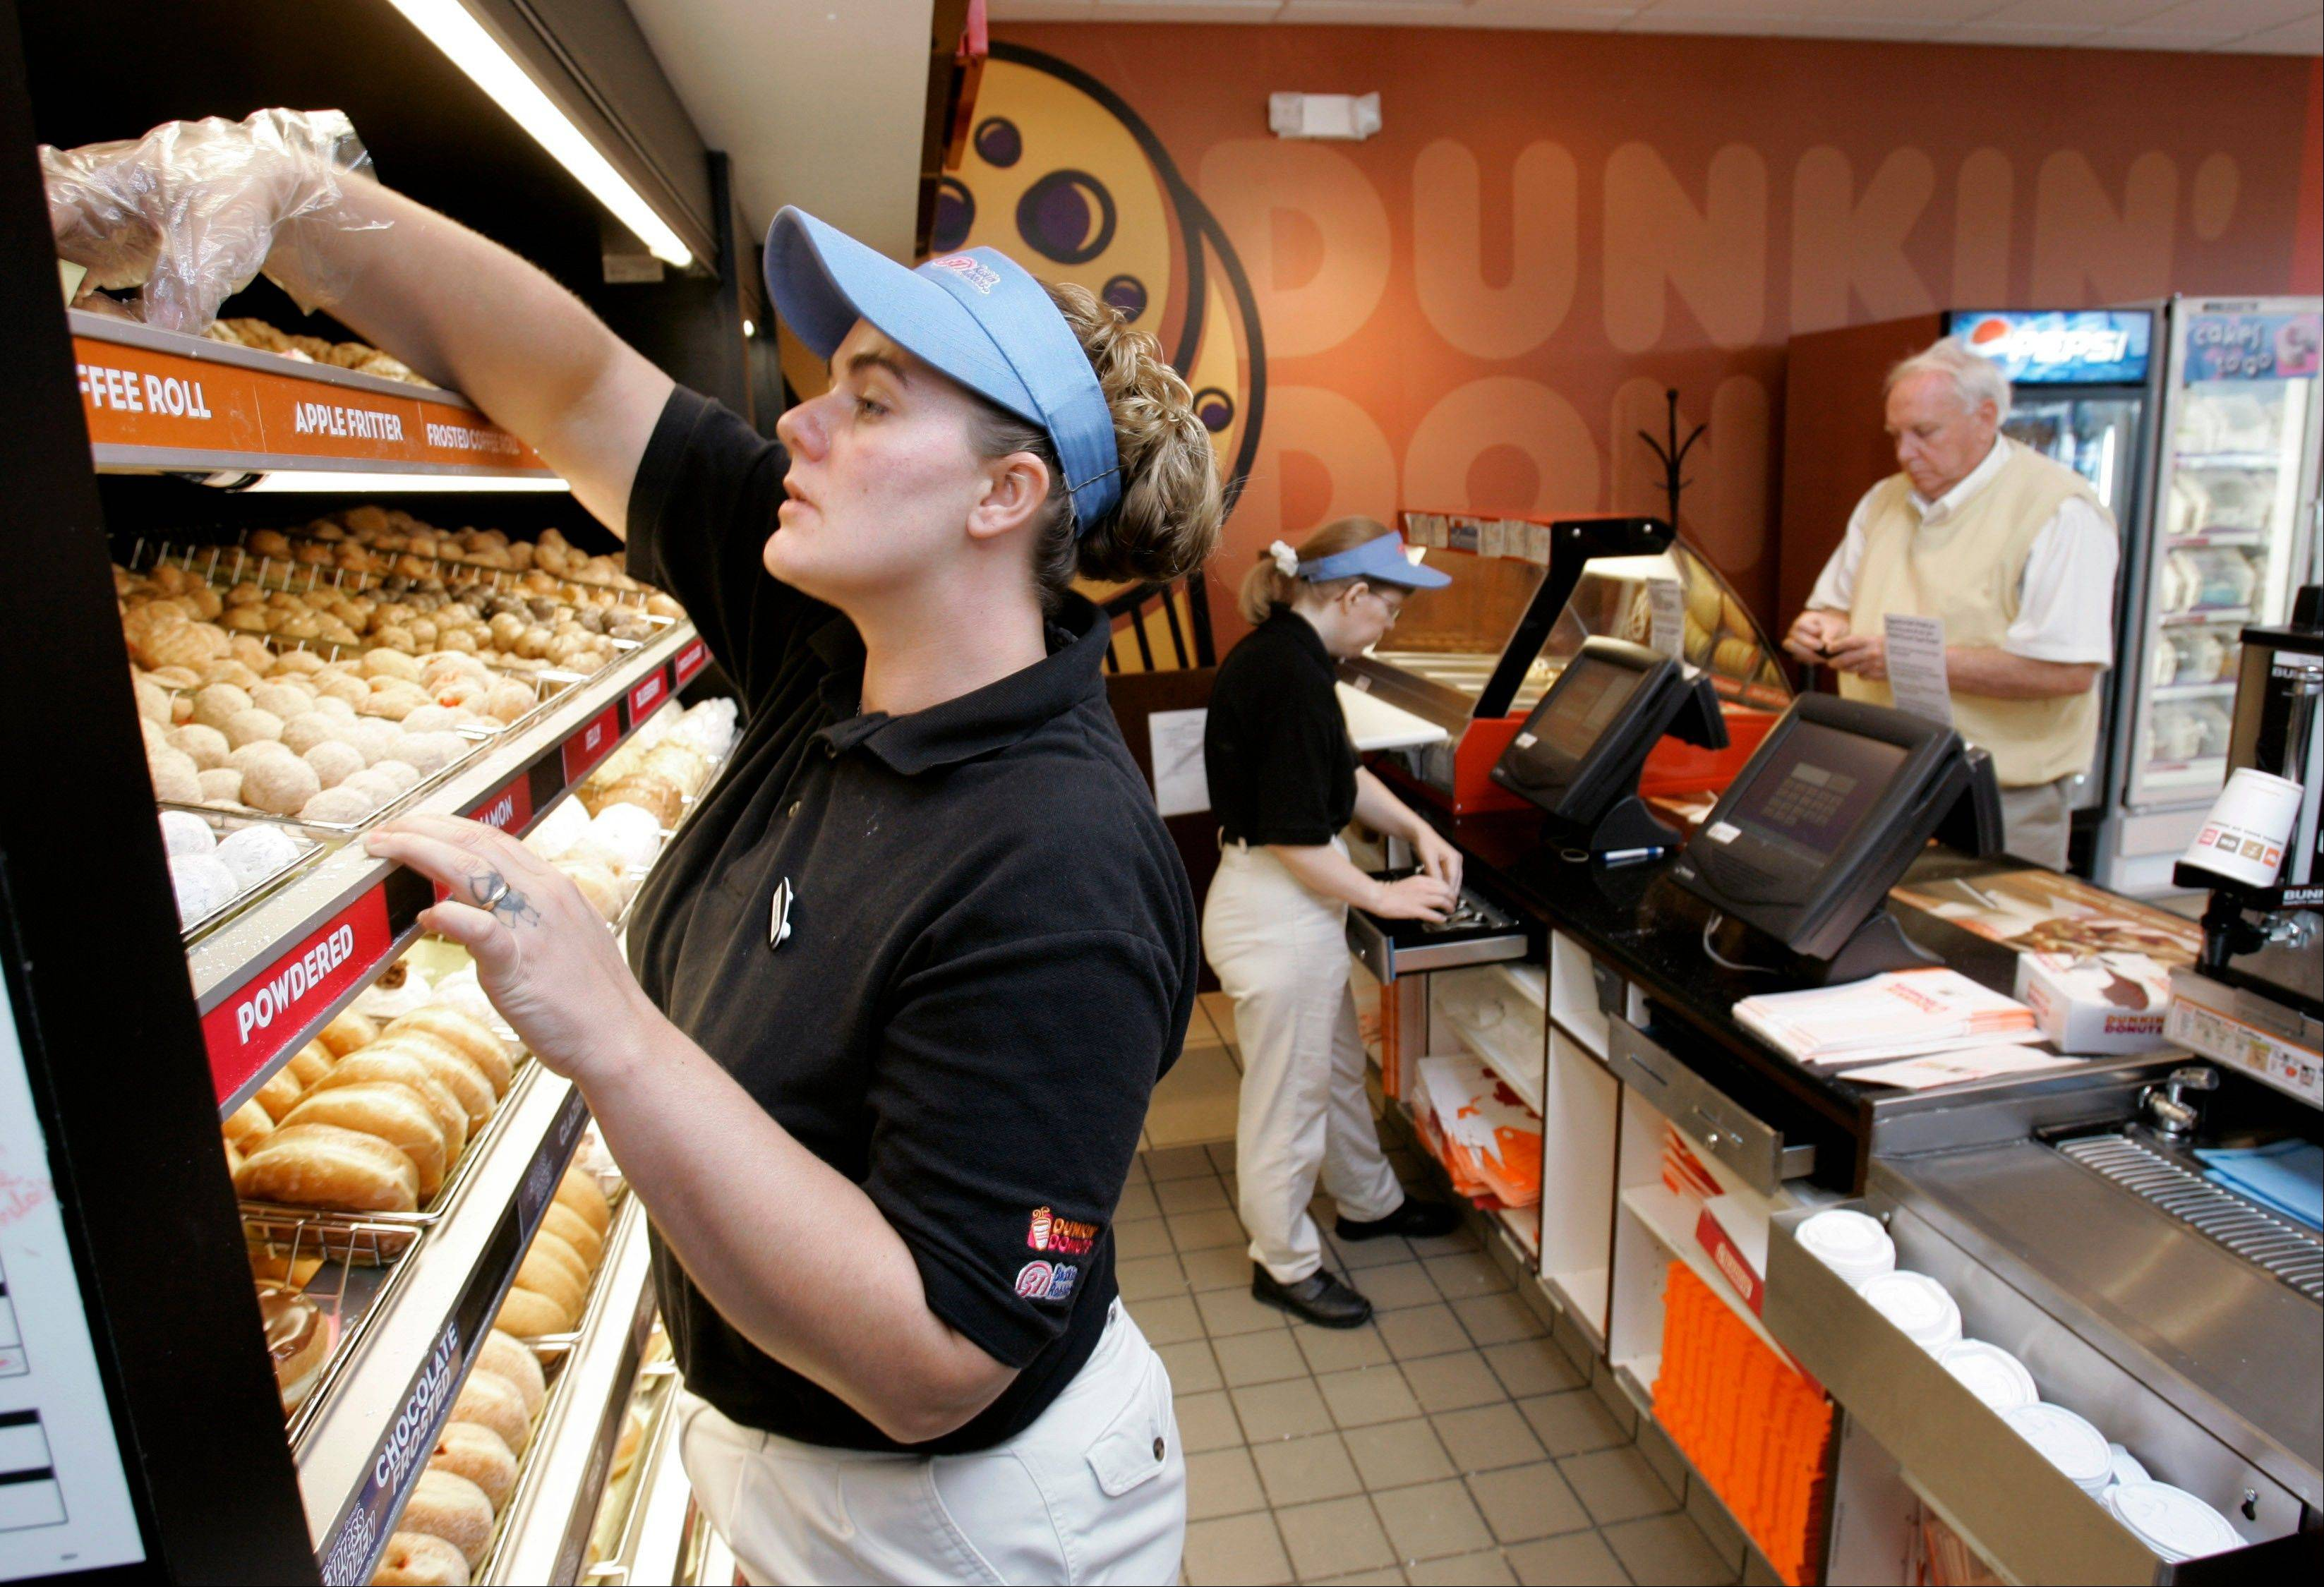 Frankie Morris, left, fills a costumer�s order at the Dunkin� Donuts store, in Franklin, Tenn. Dunkin� Donuts offers seniors who purchase a large or extra-large beverage a free doughnut, but you have to show your AARP card.